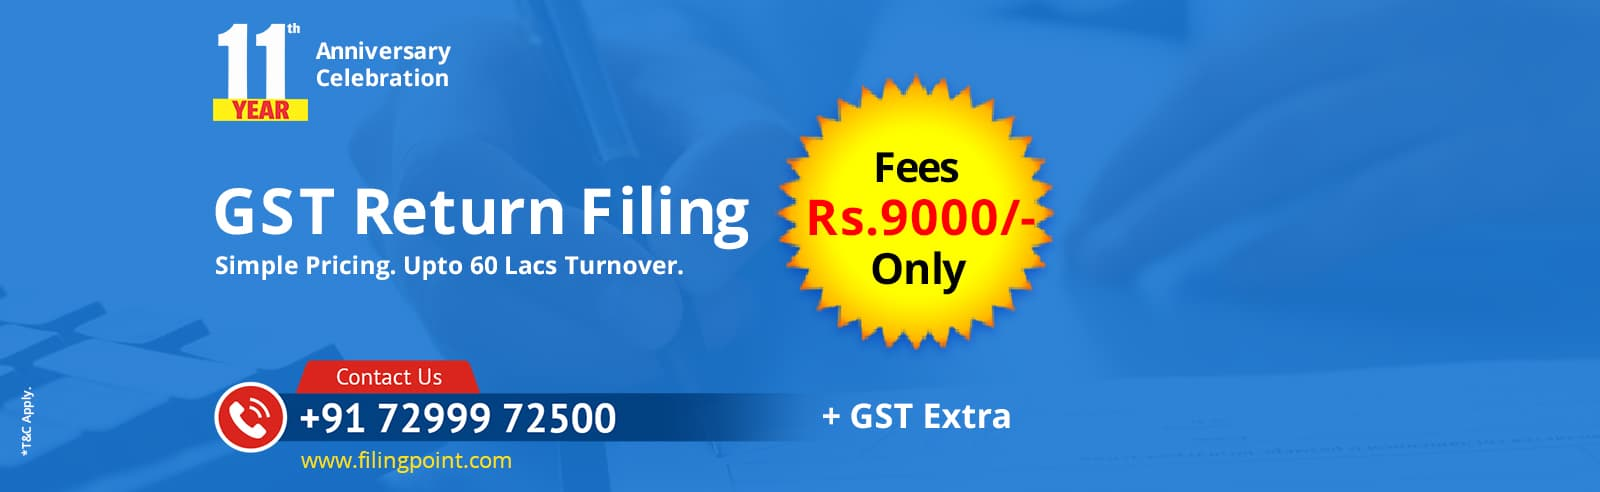 GST Filing Services Near Me Chennai Indira Nagar Fourth Street AMBATTUR O.T NEAR RAILWAY STATION